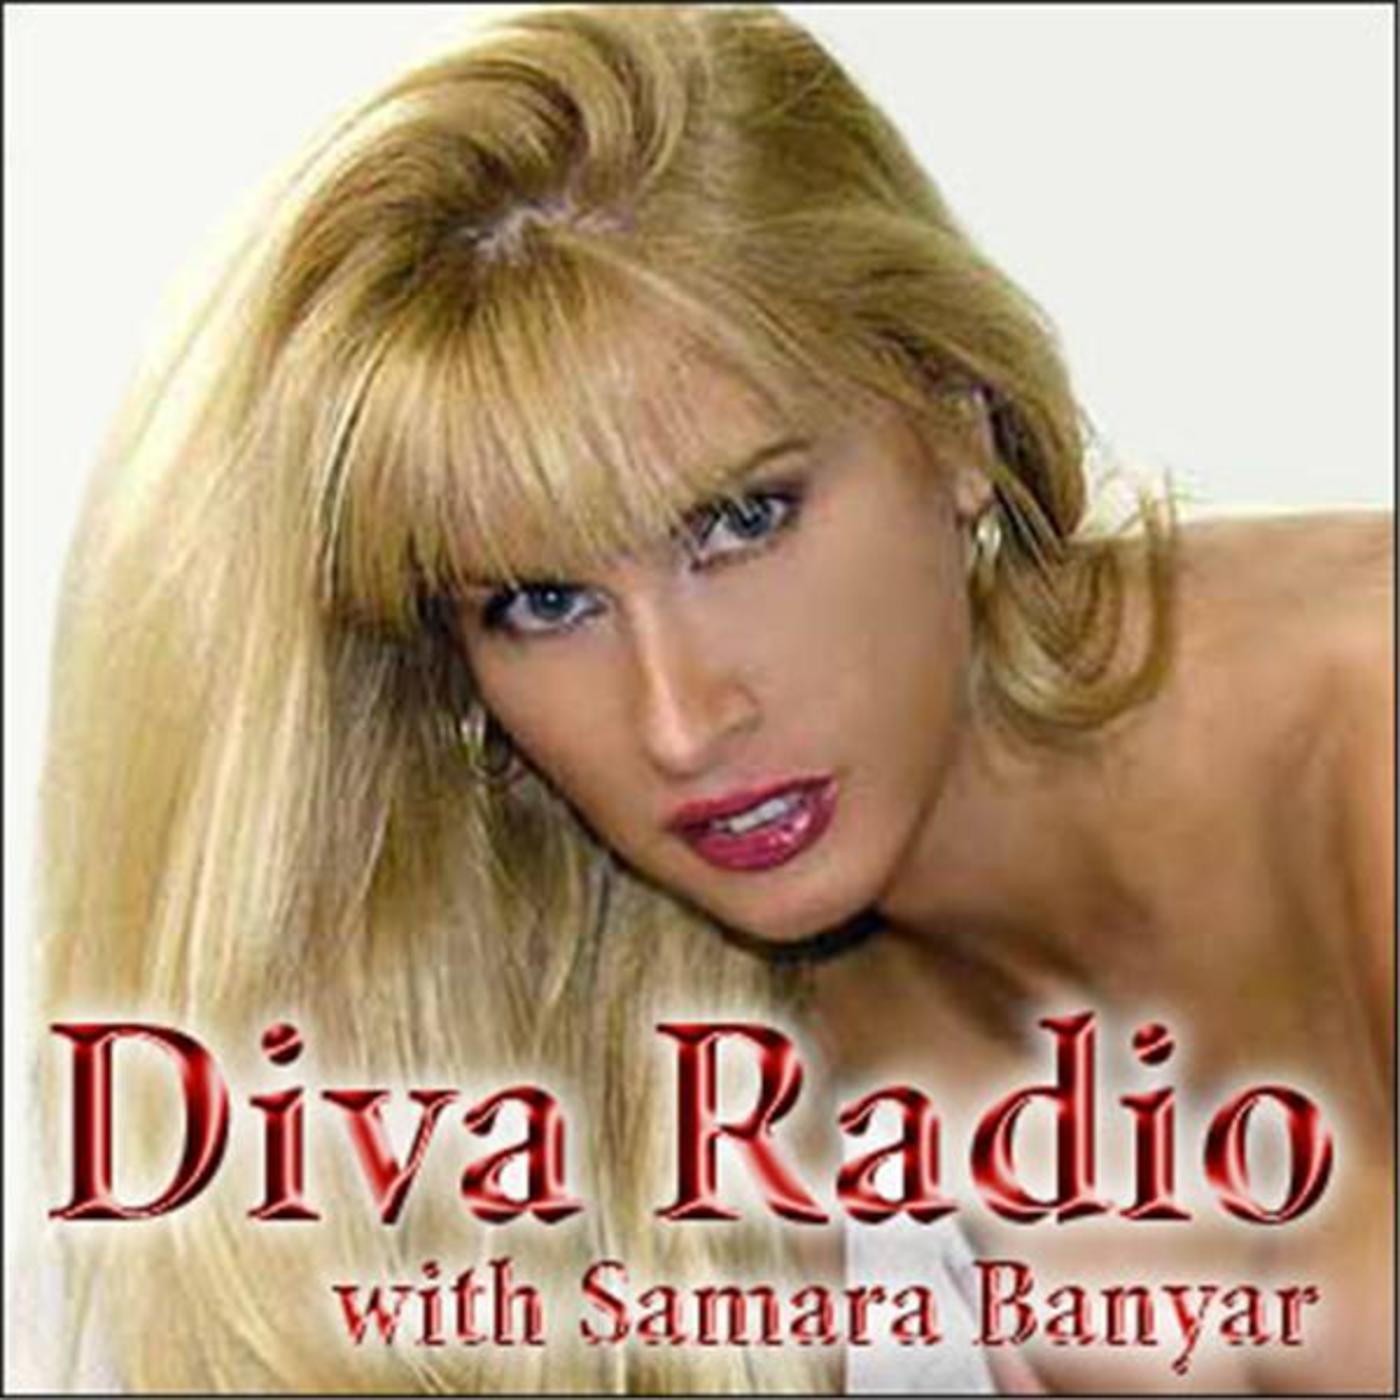 Diva Radio, with Samara Banyar